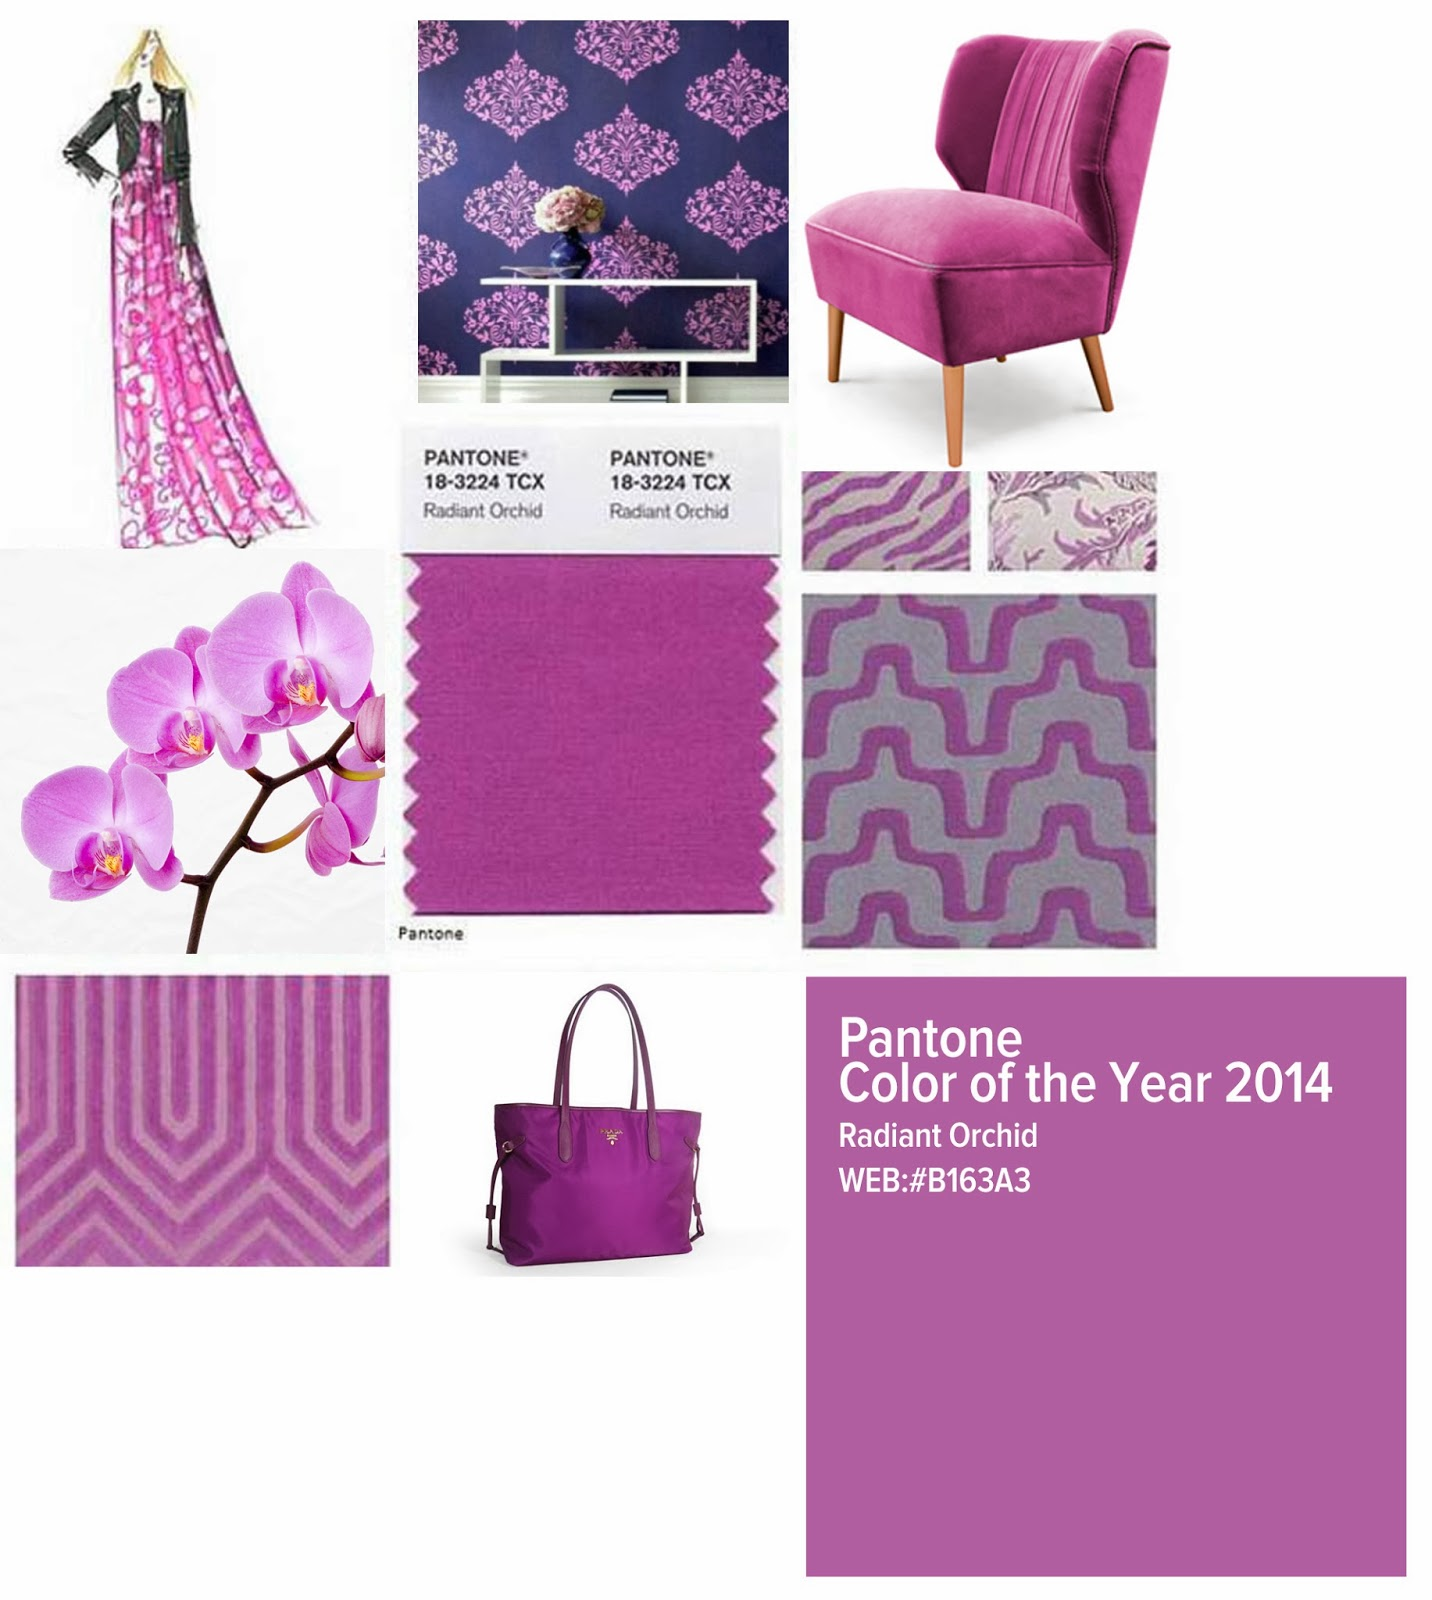 JPRchitect + Design: 2014 Pantone Color Of The Year